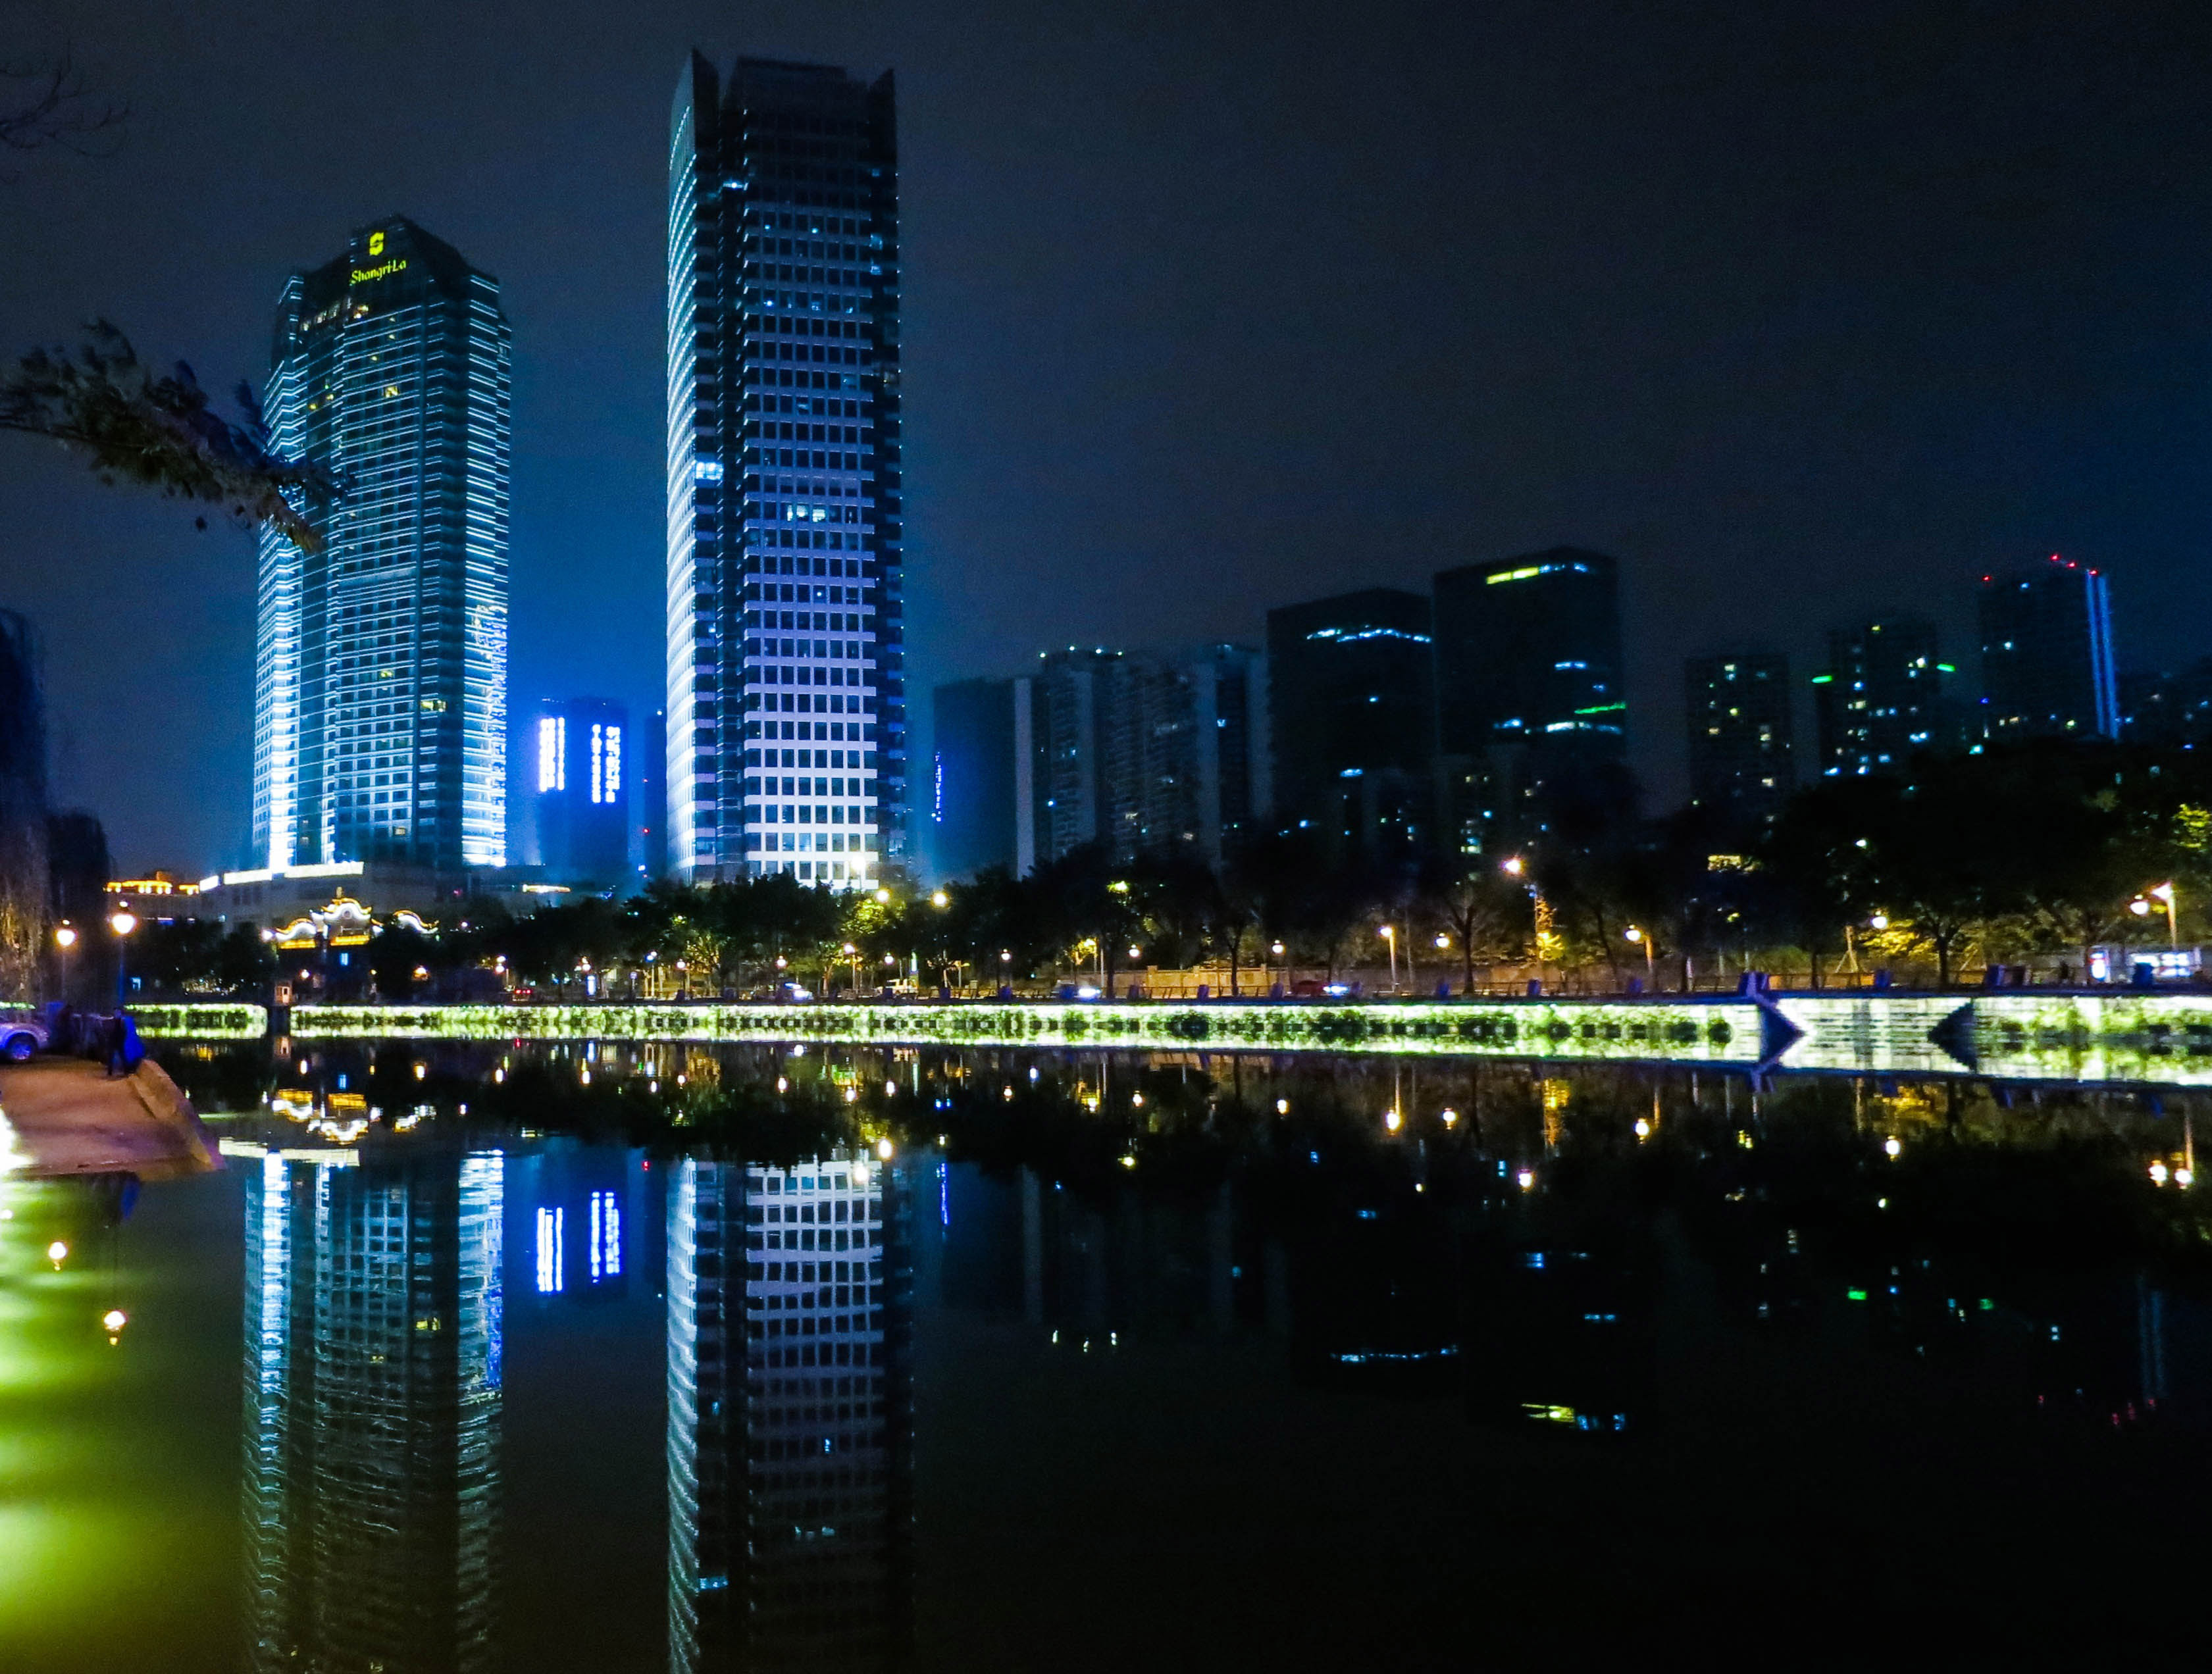 Night Time Buildings And Towers In Chengdu Sichuan China